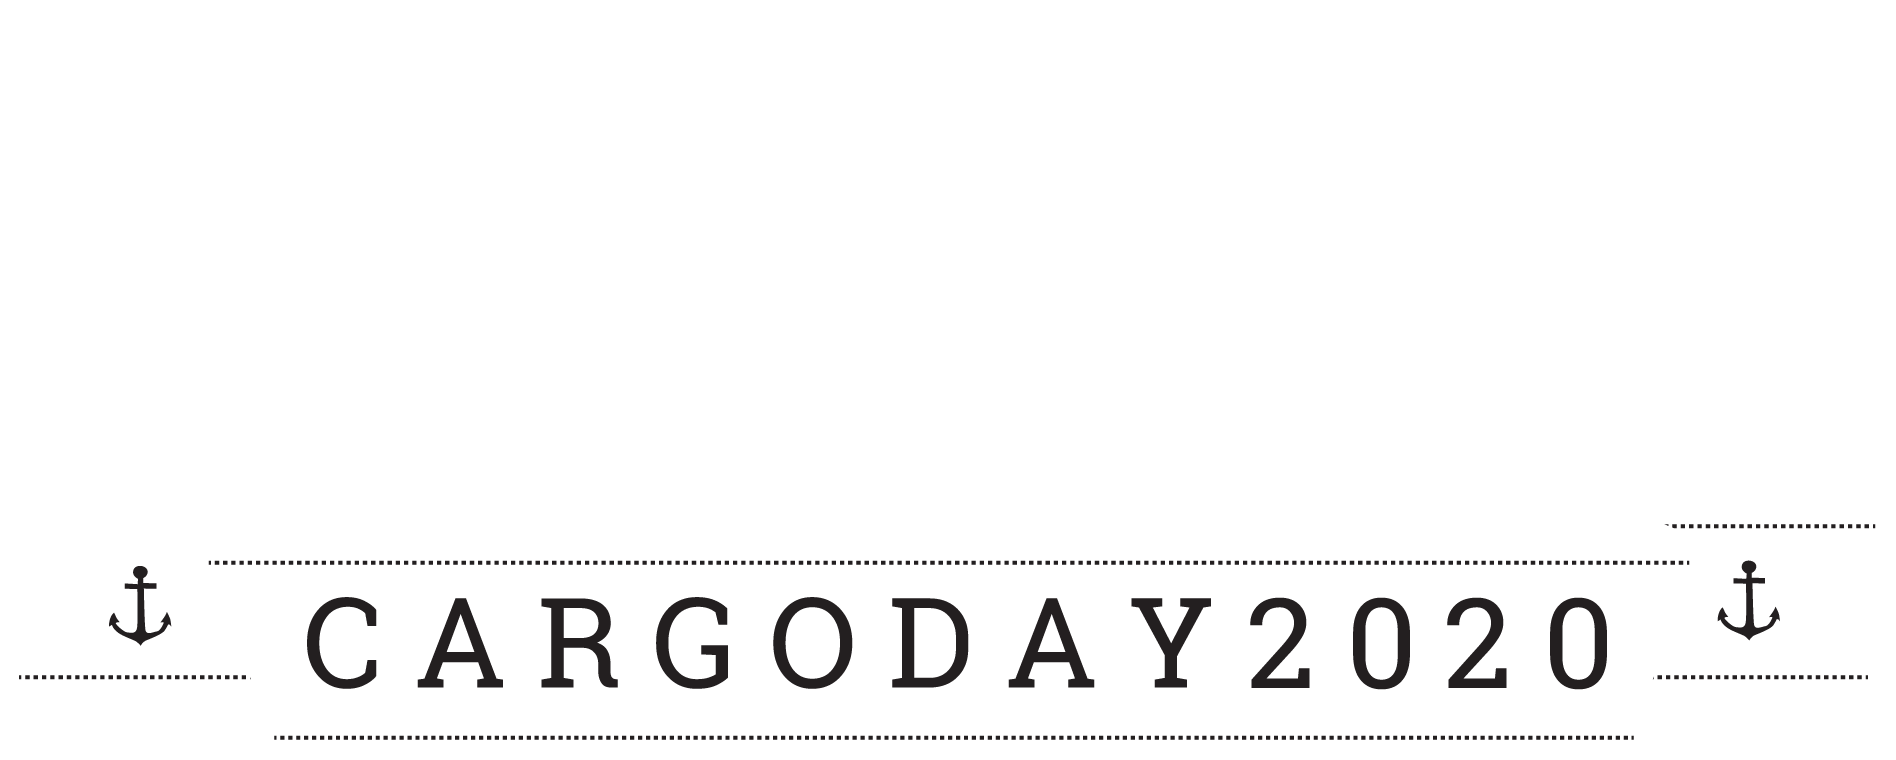 cargoday_logo_outline_white_2020